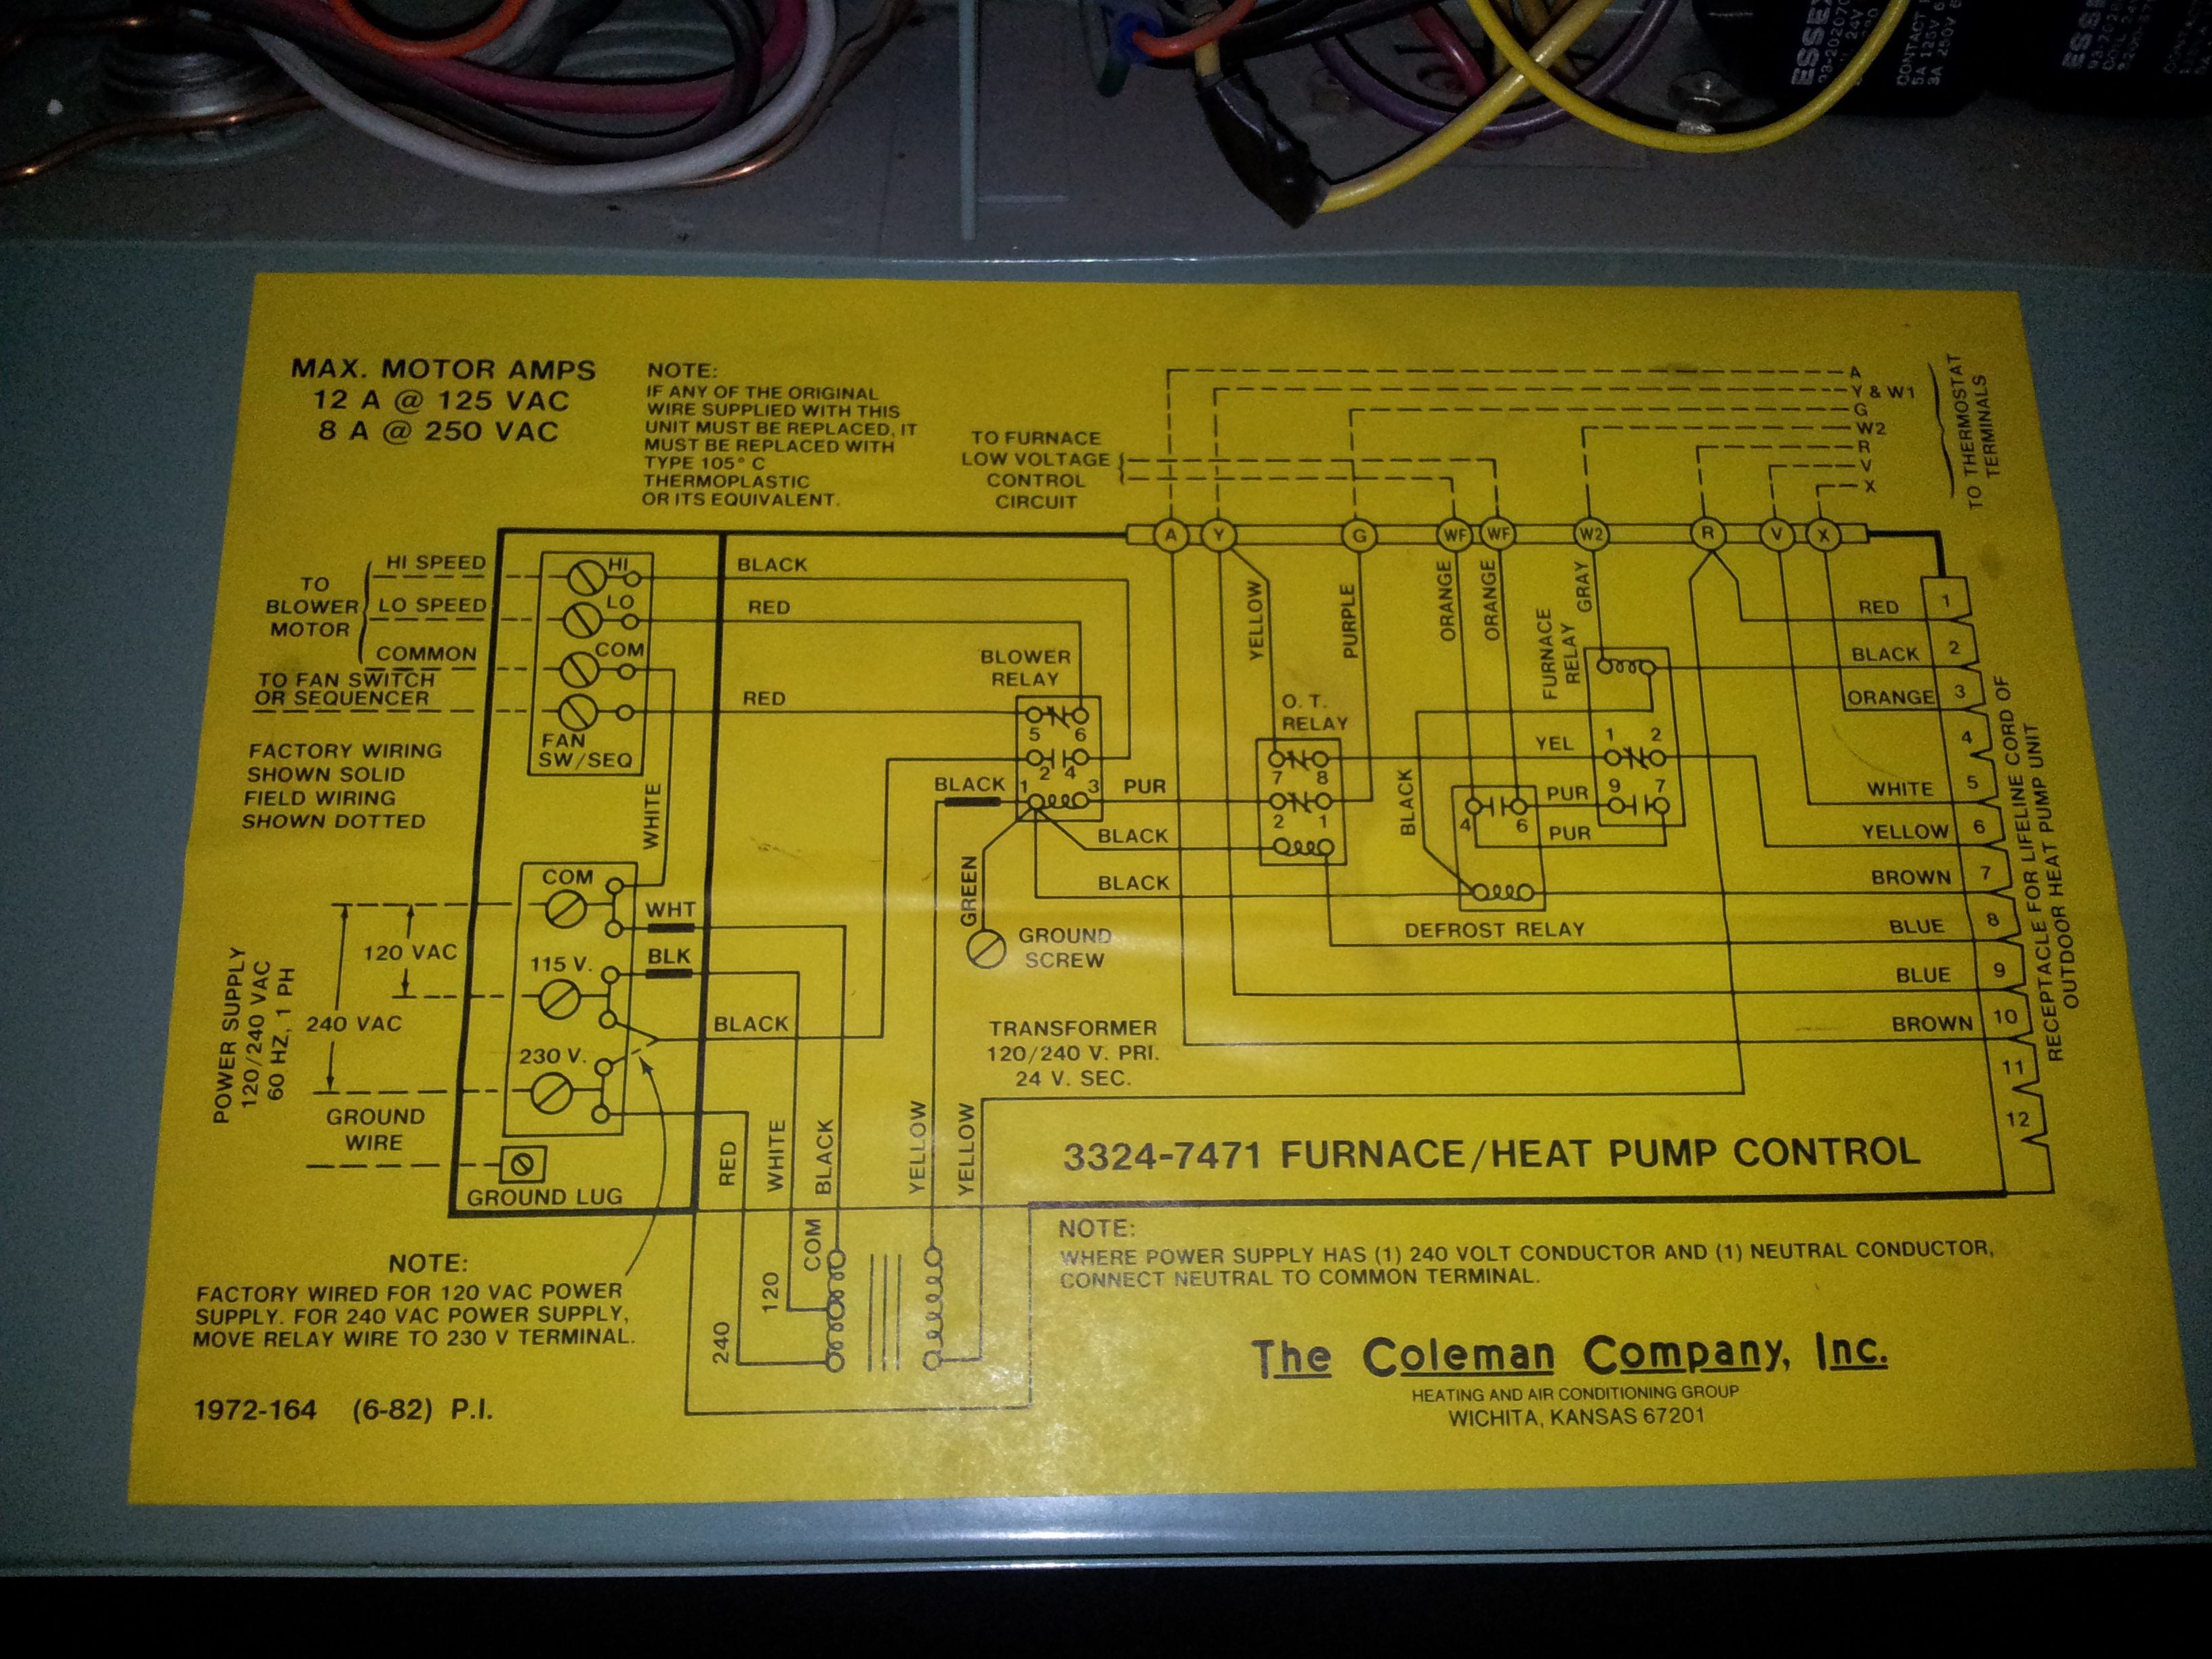 2012 08 07_020543_20120806_170817 wiring diagram for coleman furnace readingrat net coleman evcon wiring diagram ac at sewacar.co